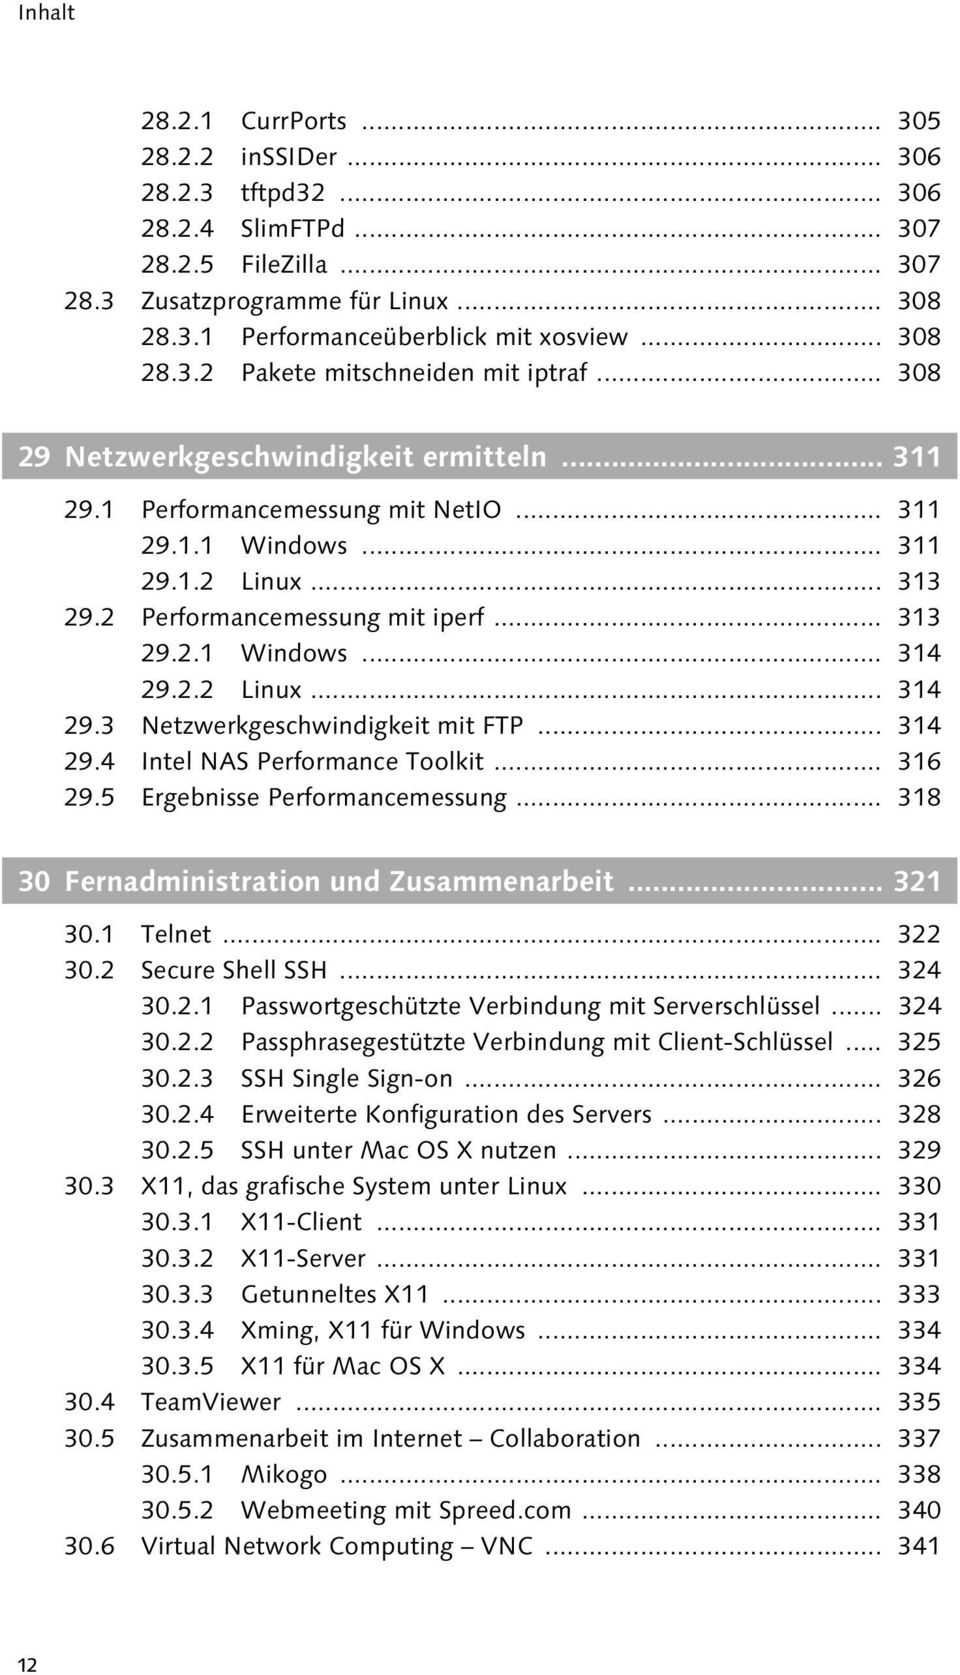 2 Performancemessung mit iperf... 313 29.2.1 Windows... 314 29.2.2 Linux... 314 29.3 Netzwerkgeschwindigkeit mit FTP... 314 29.4 Intel NAS Performance Toolkit... 316 29.